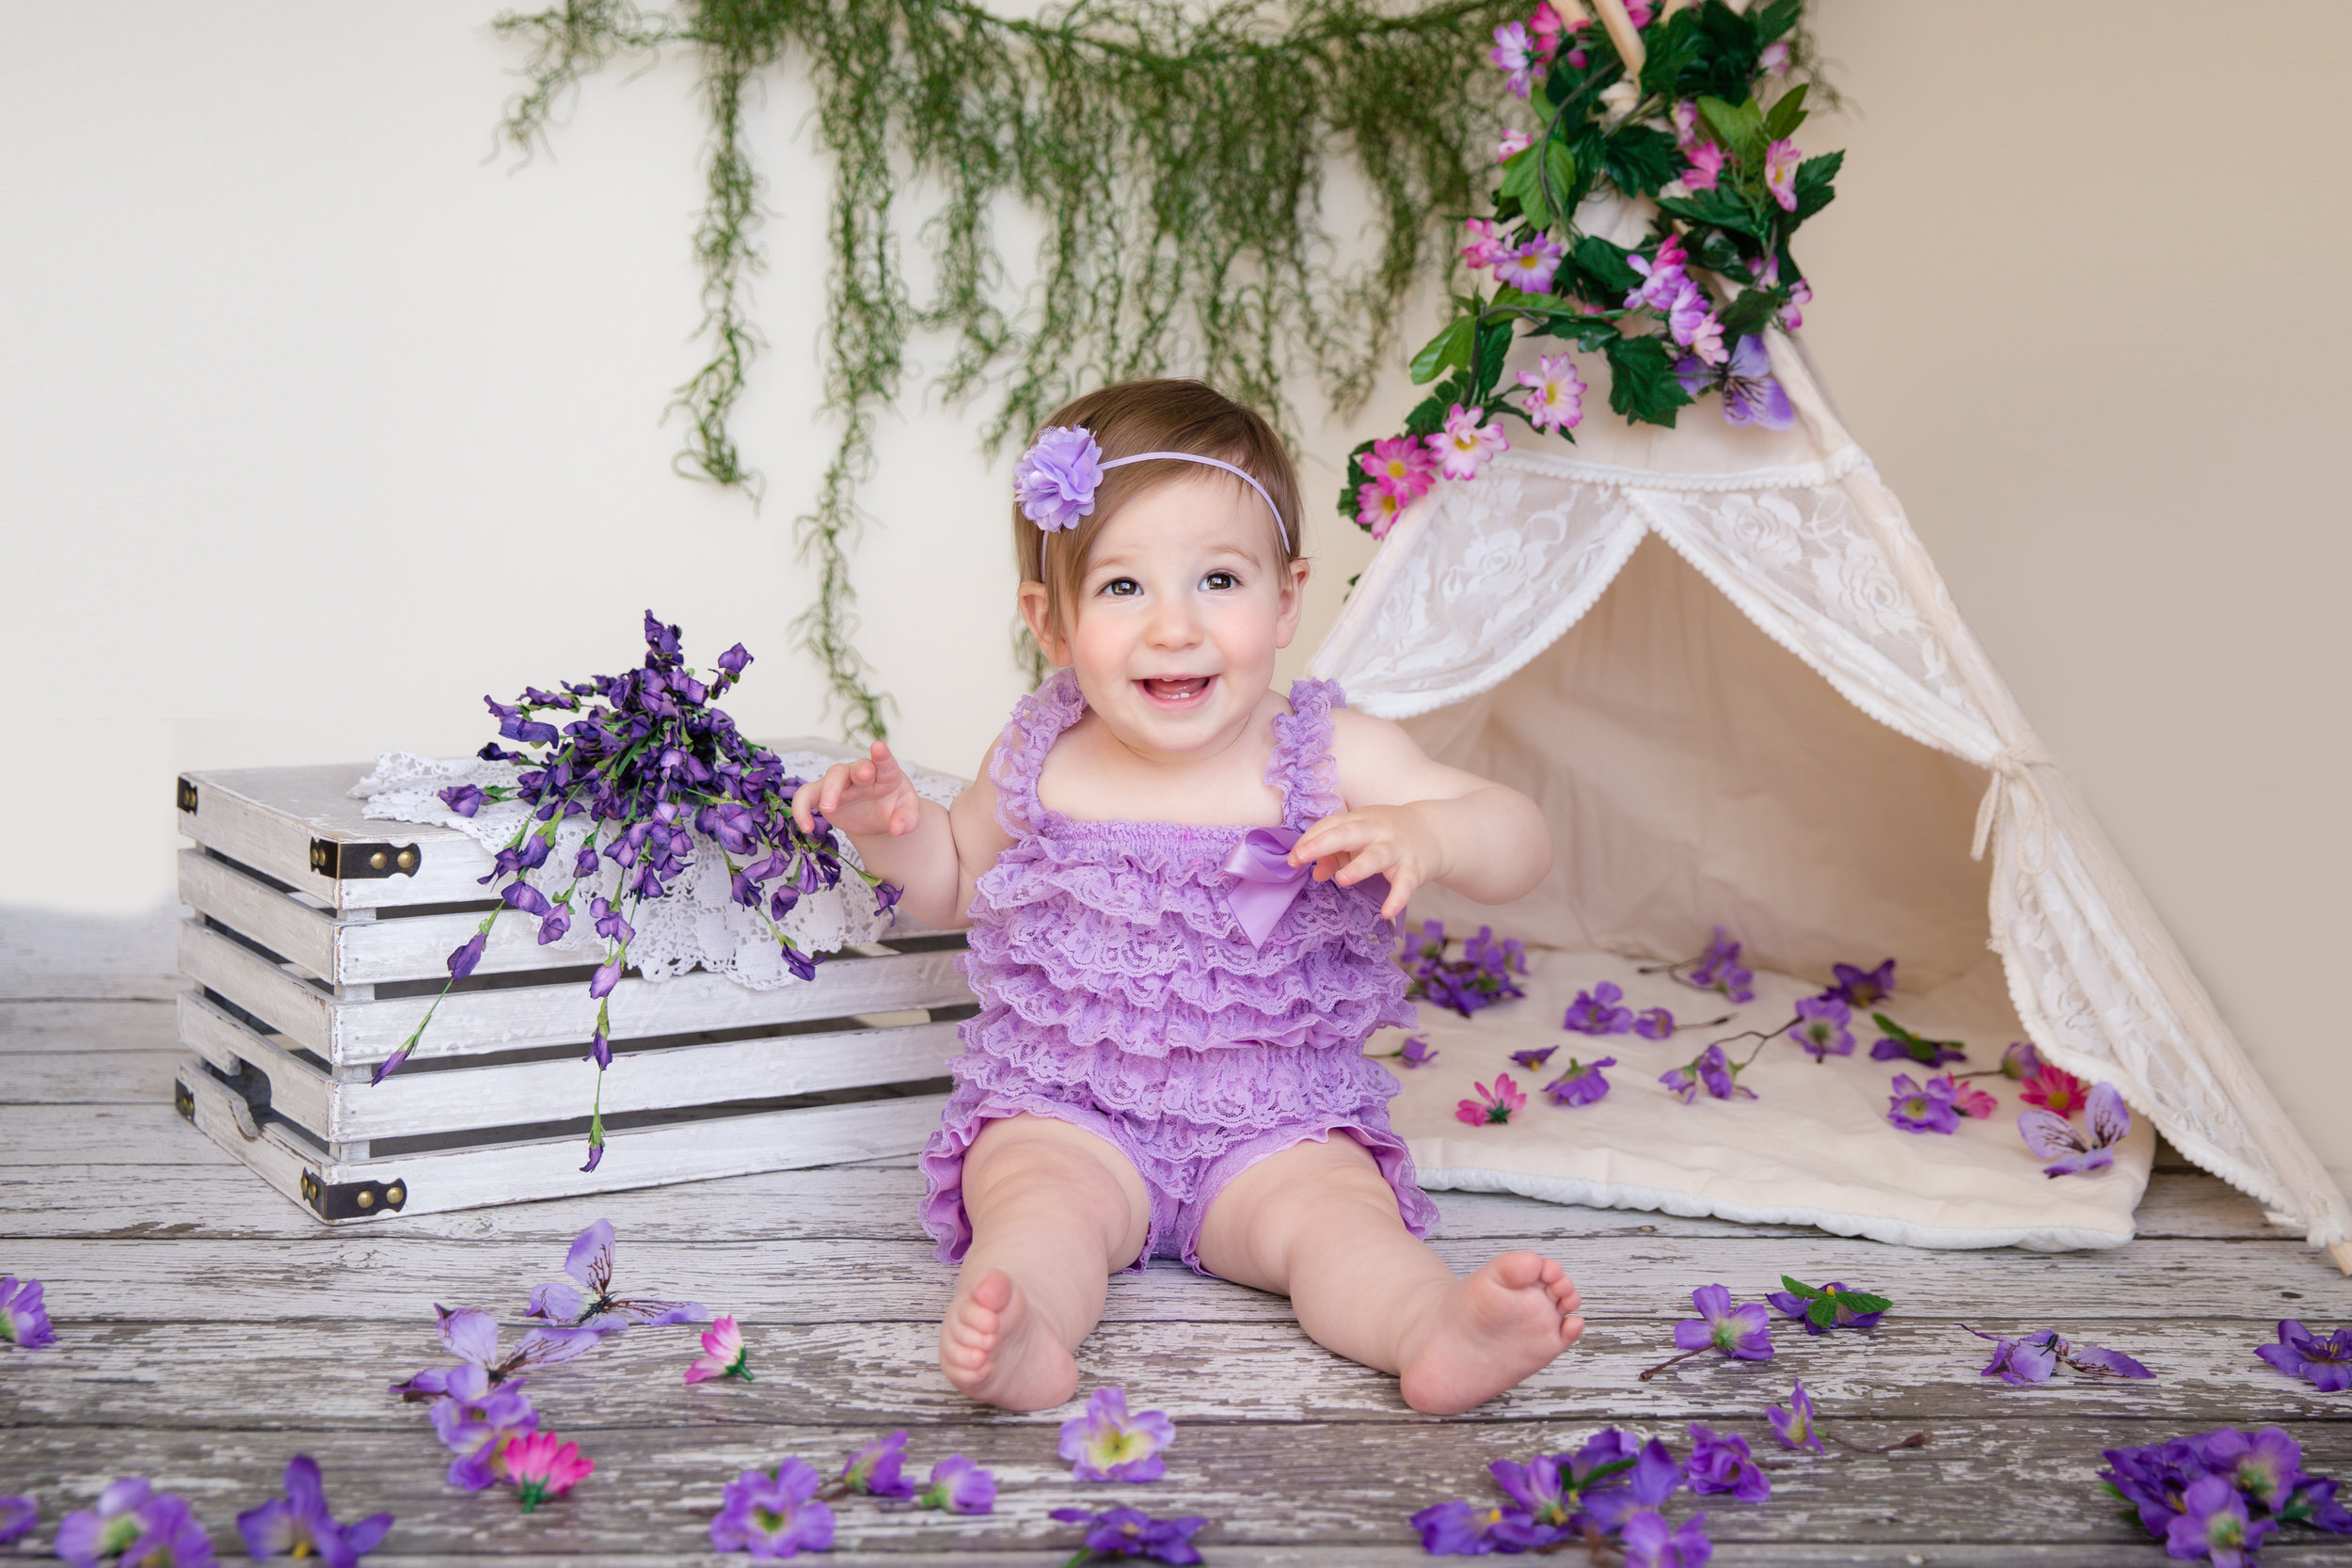 Baby girl wearing a cute violet romper sitting in front of the tipi and surrounded by flowers. Calgary baby photographer. Milashka Photography.